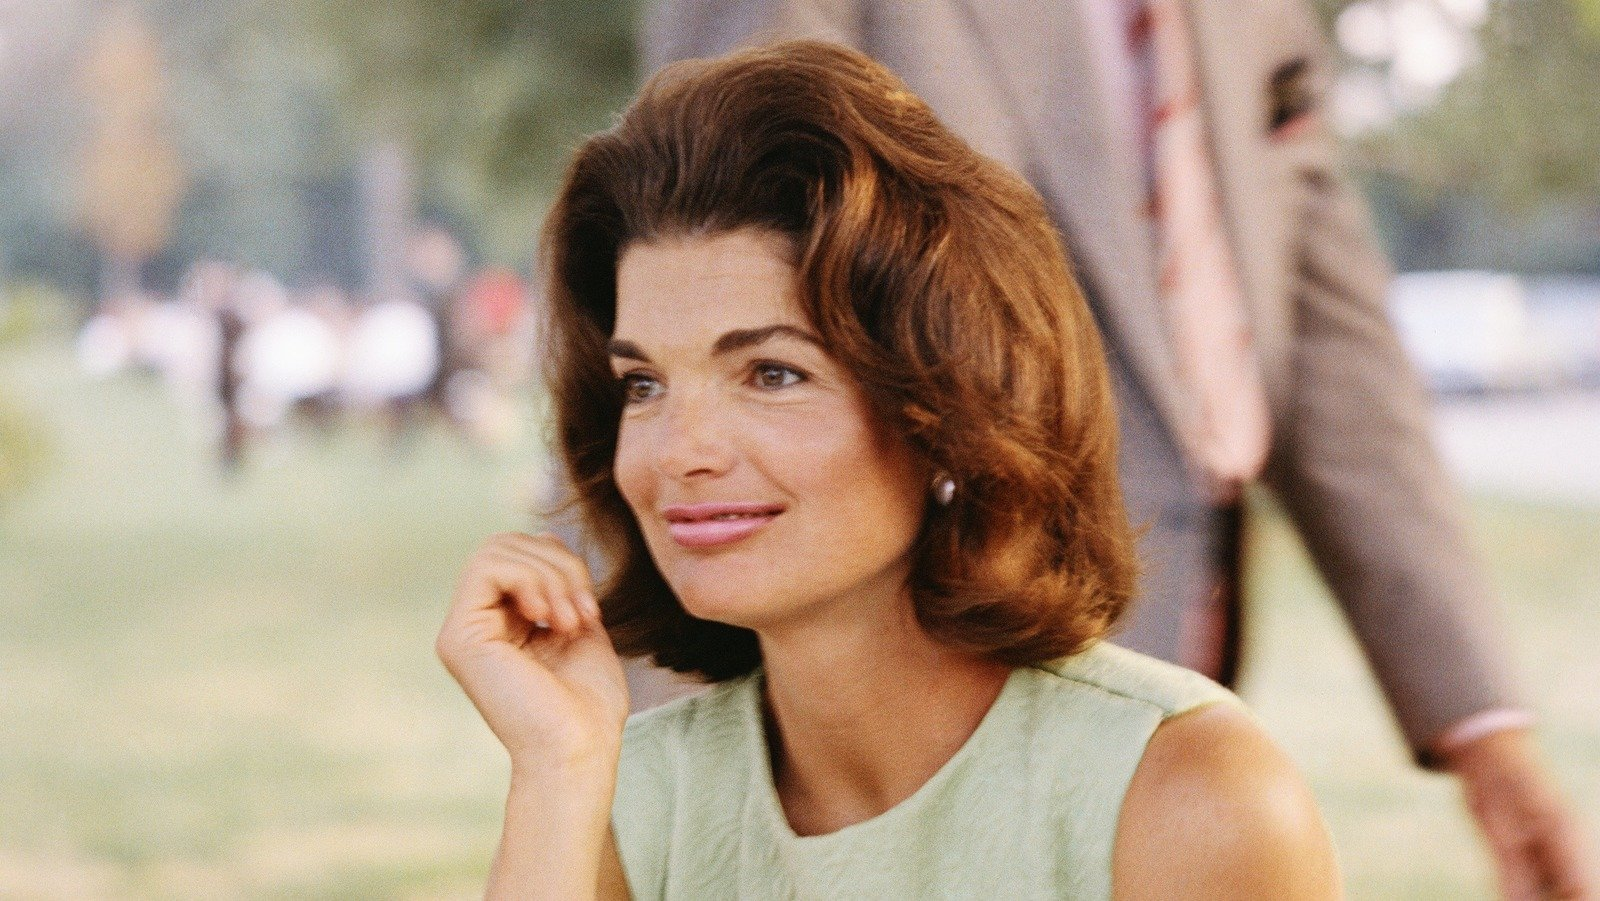 The Tragic True Story Of First Lady Jacqueline Kennedy